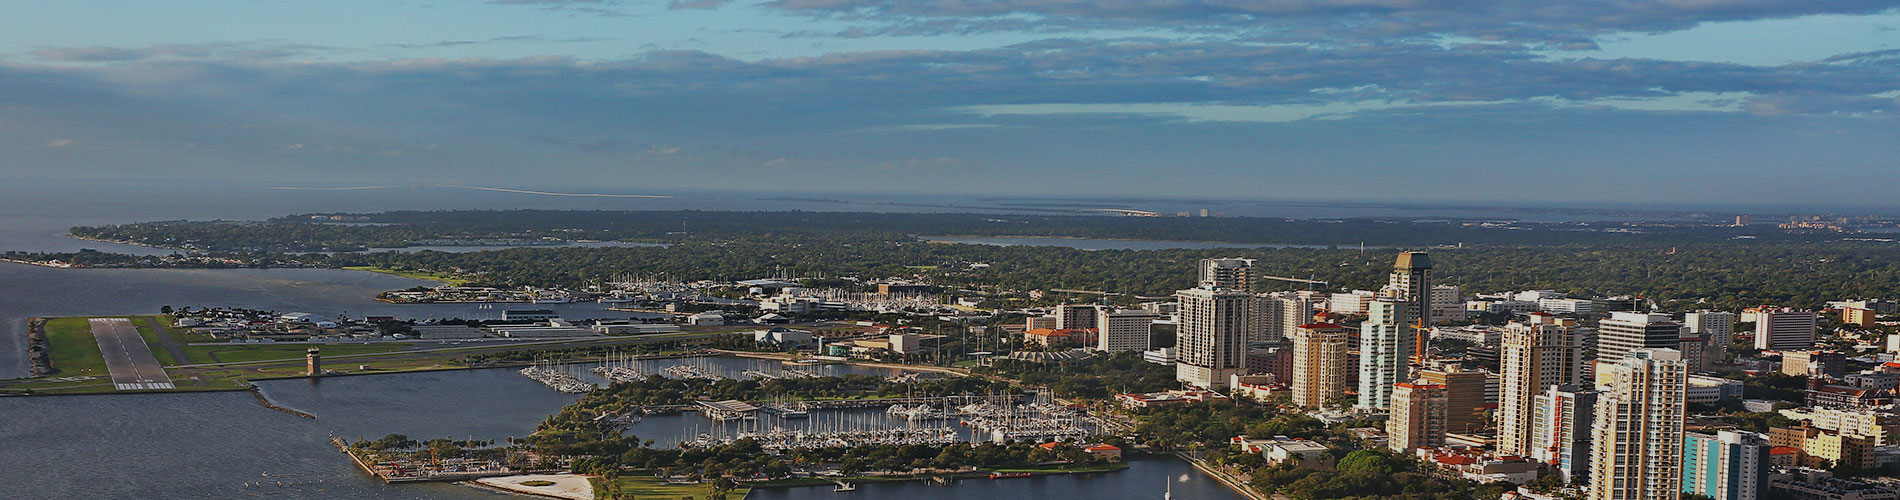 Aerial view of St. Petersburg Florida.